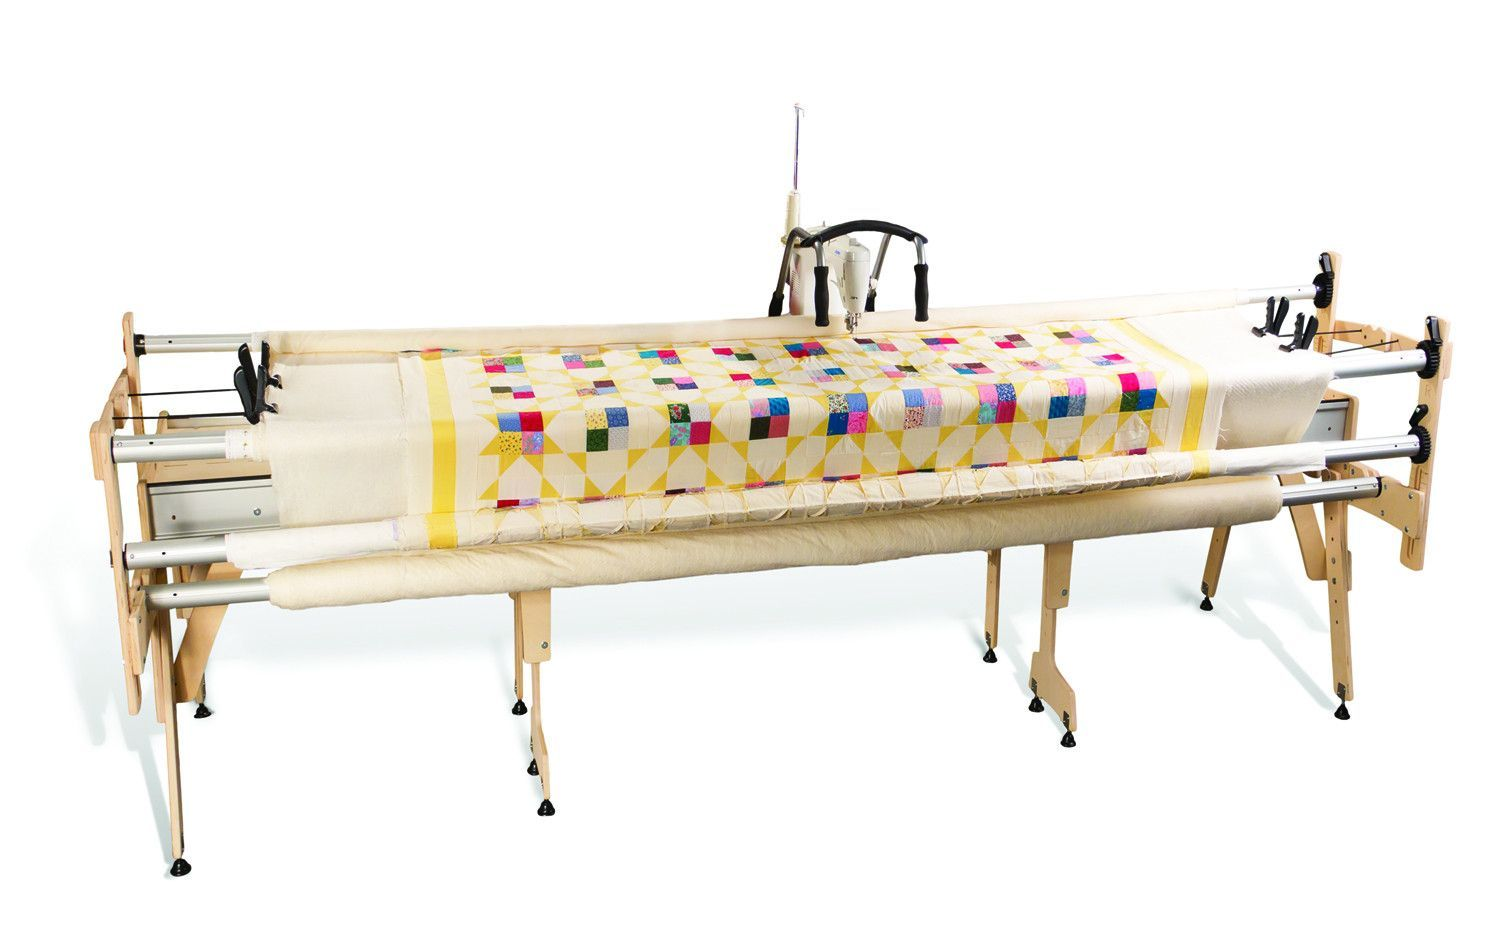 Grace Gracie King Sewing Quilting Frame For Quilting Machine: Janome ...